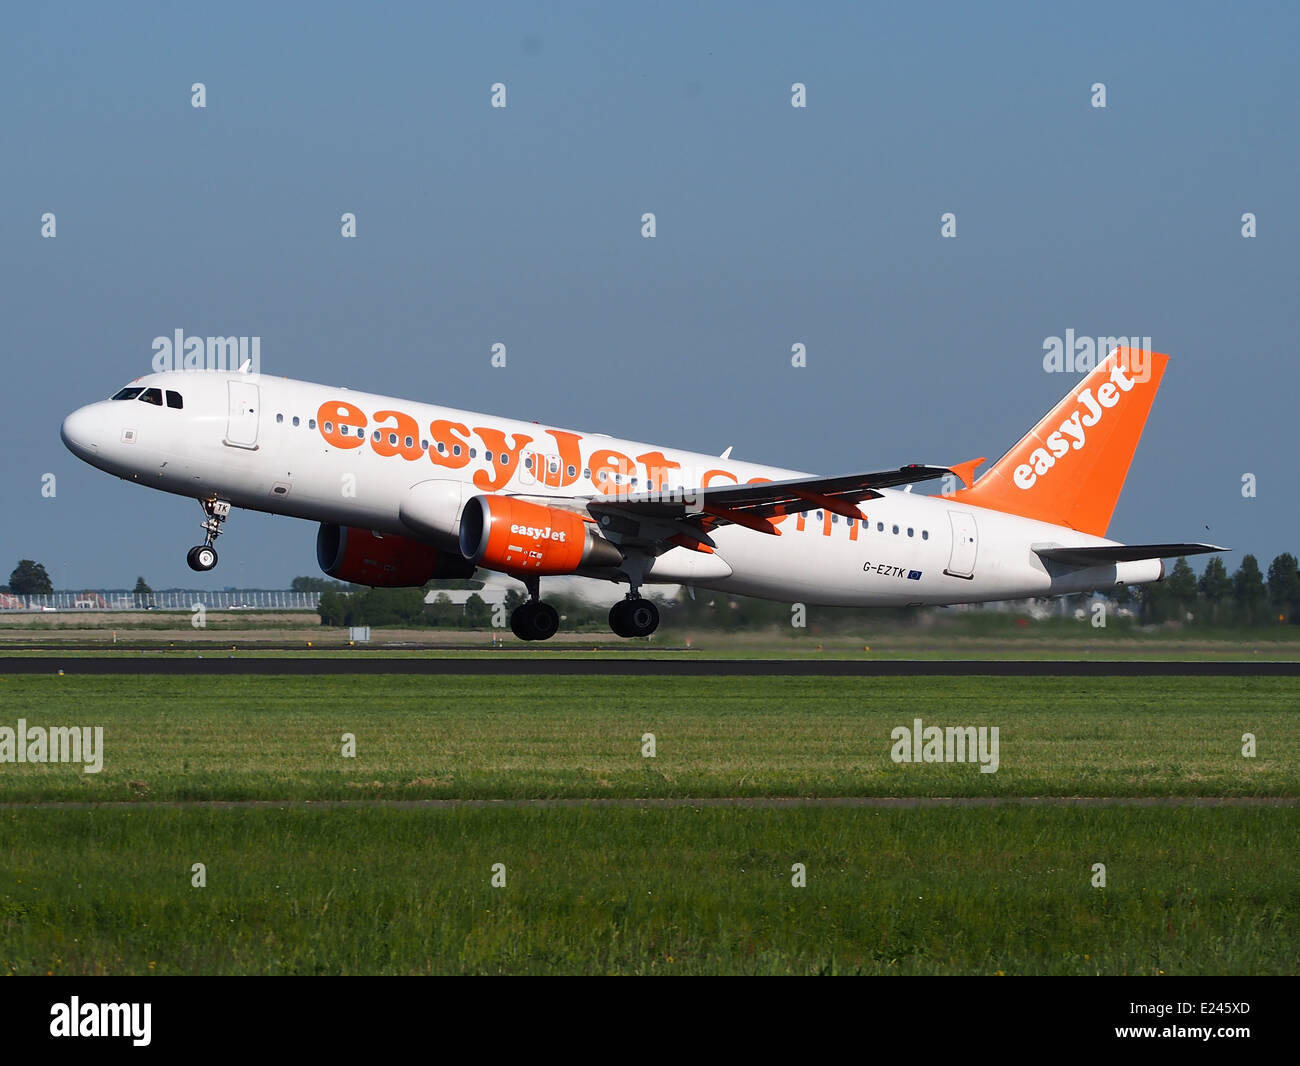 G-EZTK easyJet Airbus A320-214 - cn 3991 takeoff from Schiphol (AMS - EHAM), The Netherlands, 16may2014, pic-1 - Stock Image